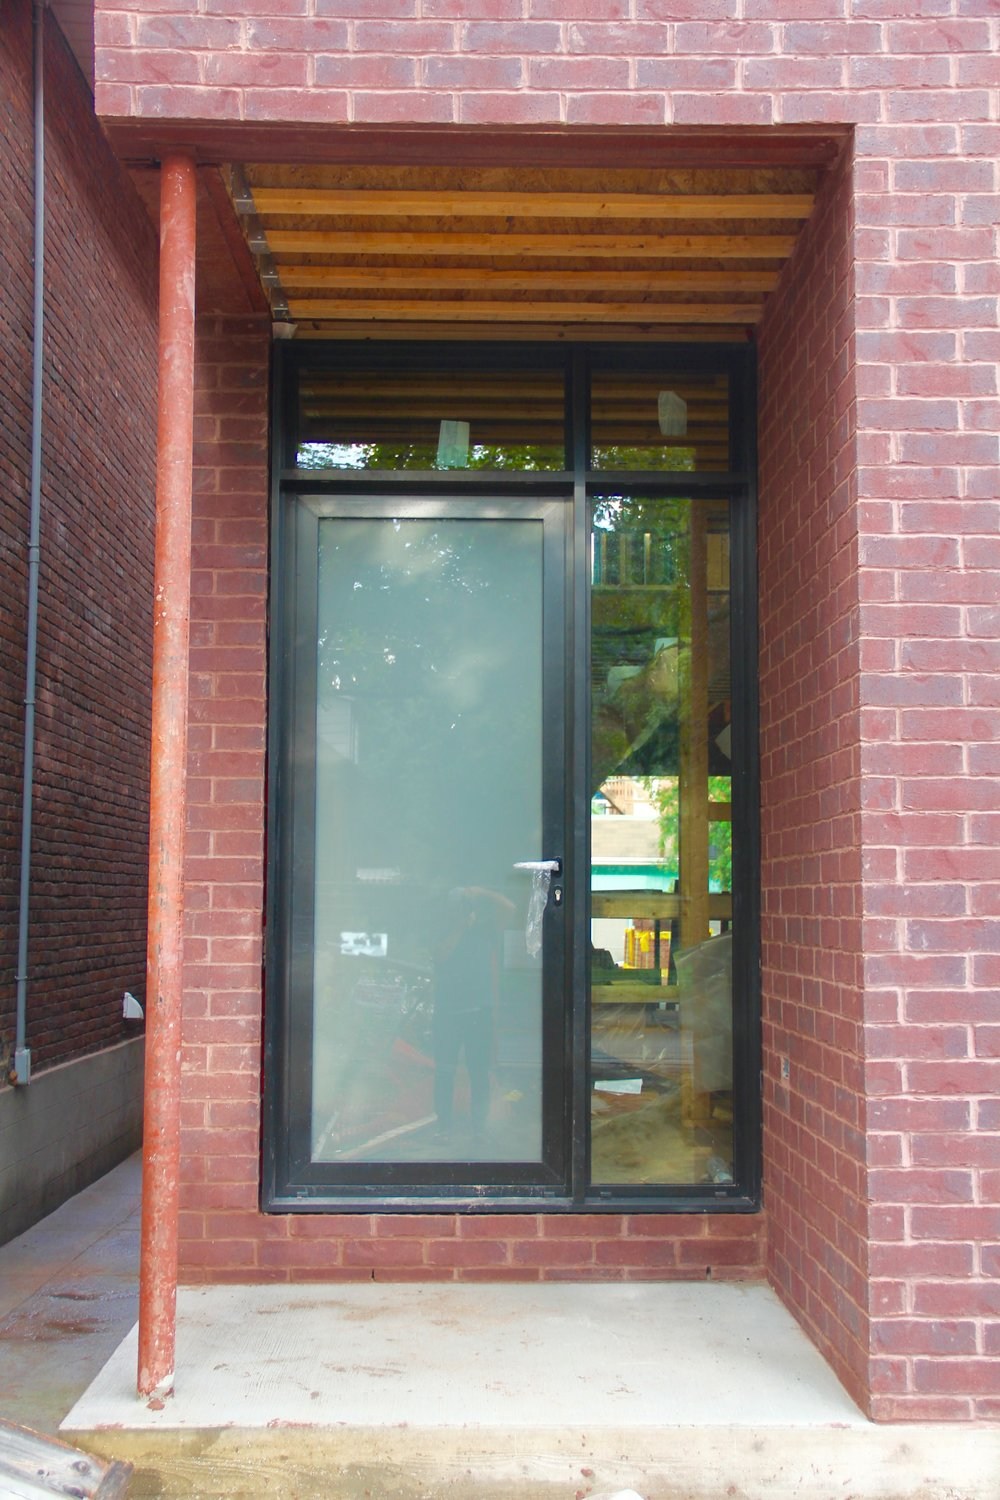 Entry door system with etched glass for privacy